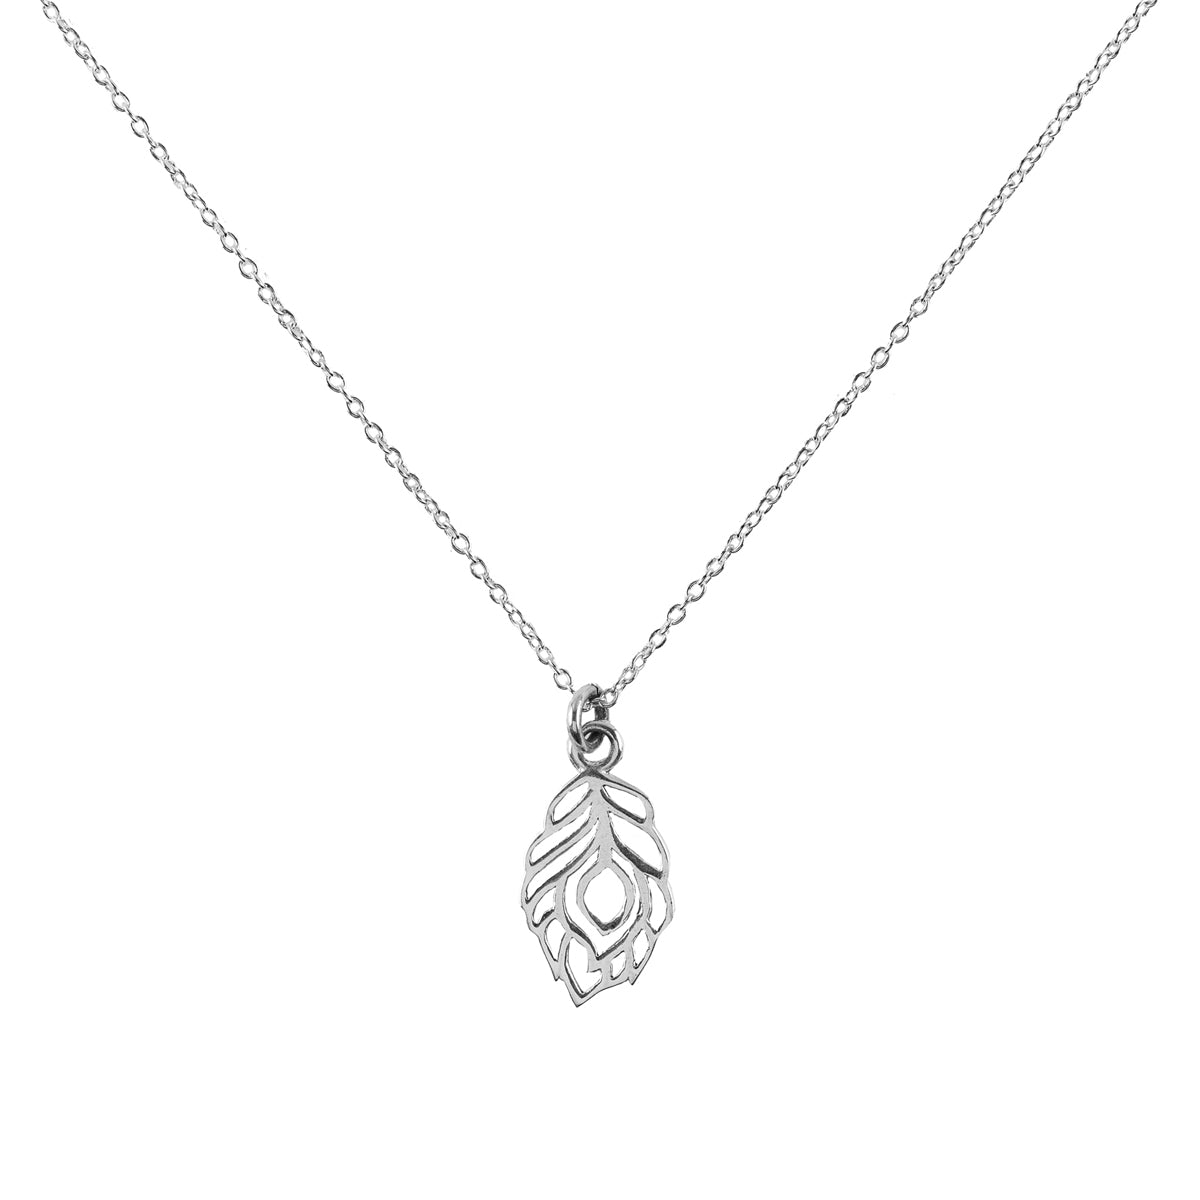 Shanasa Sterling Silver Necklace - Splendour